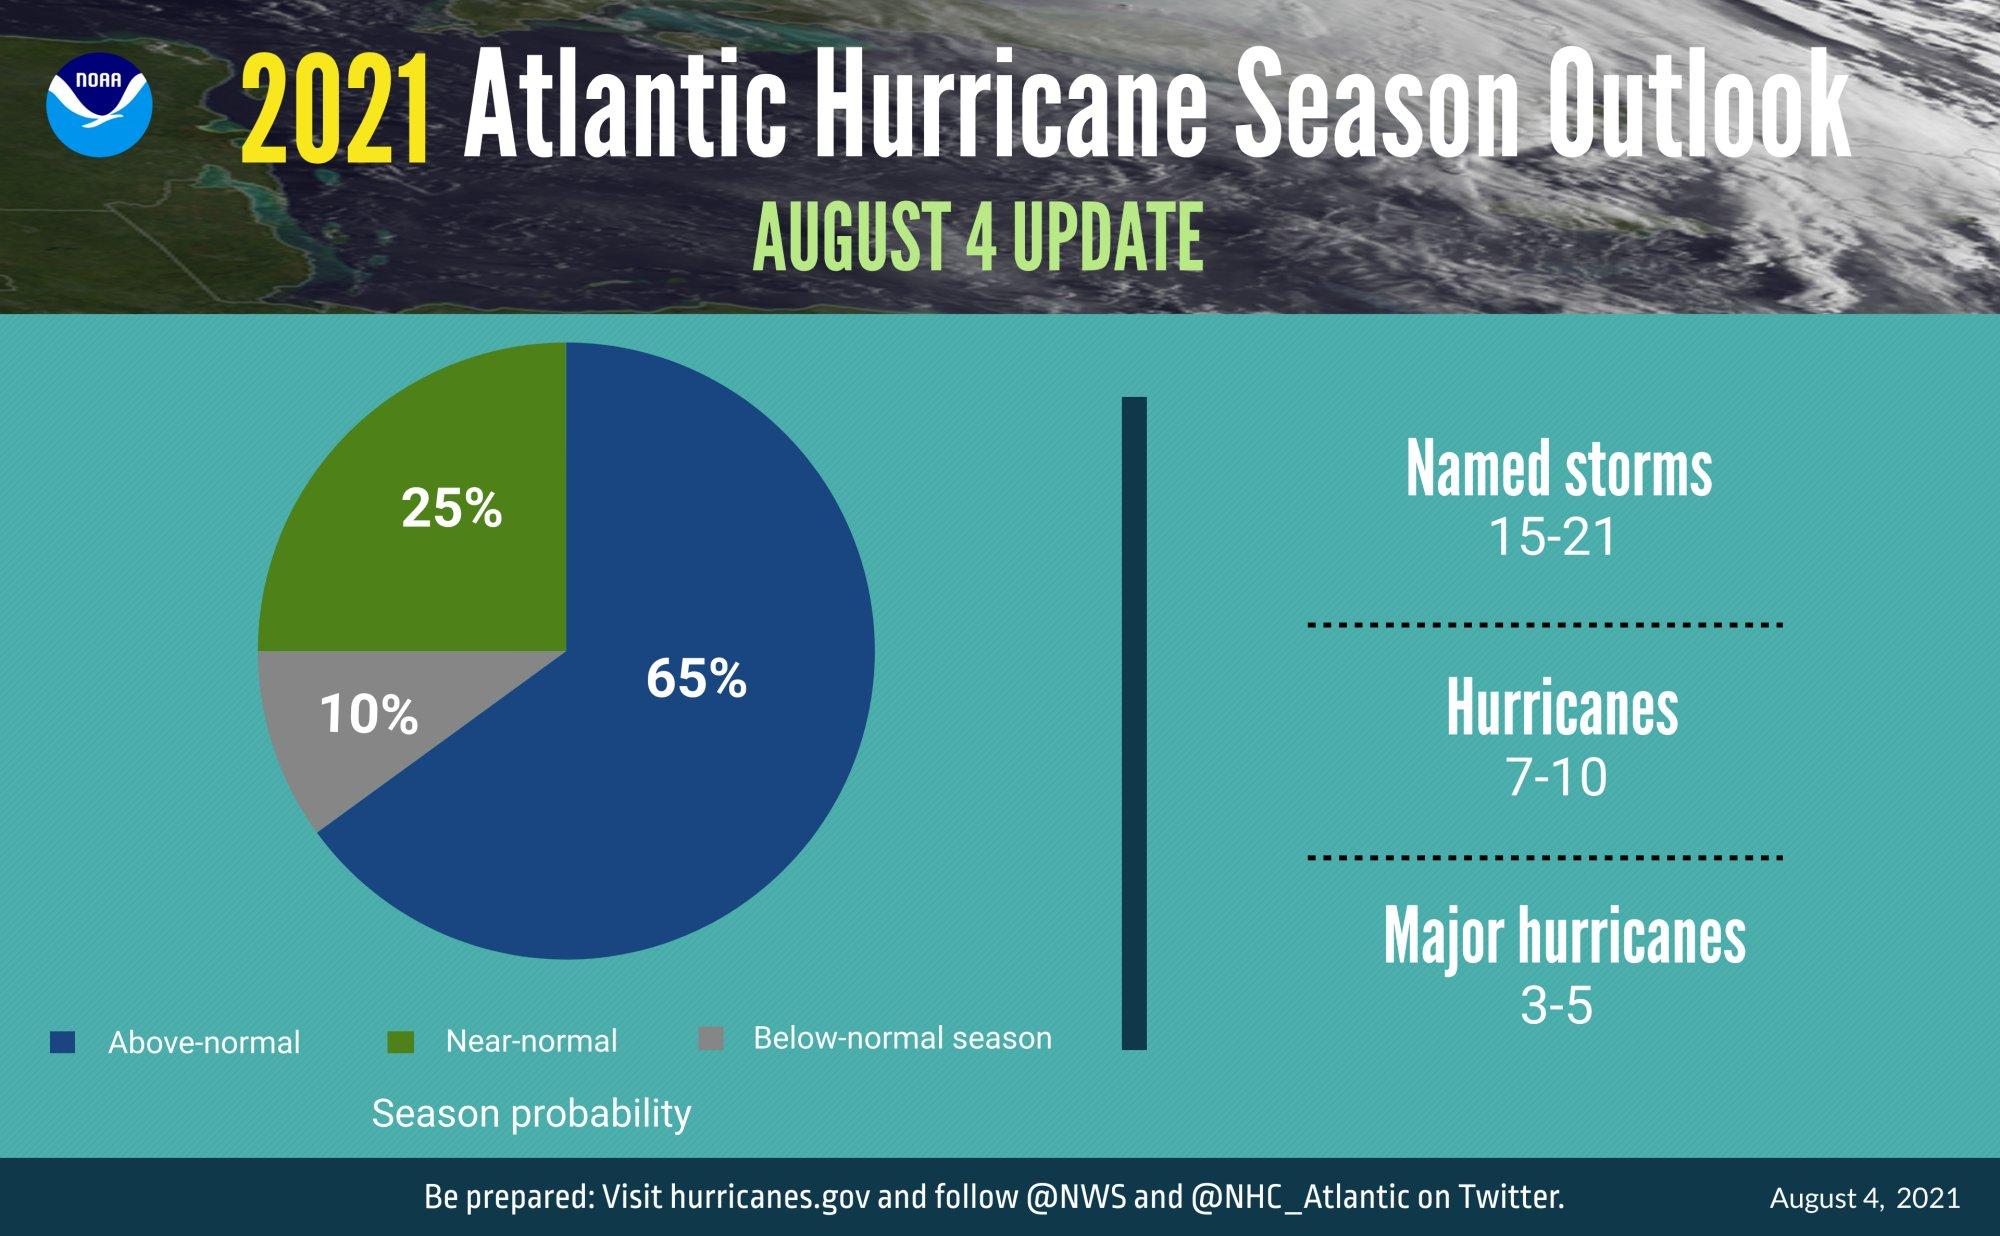 NOAA bumps up hurricane predictions, calls for 65% chance of above-normal season